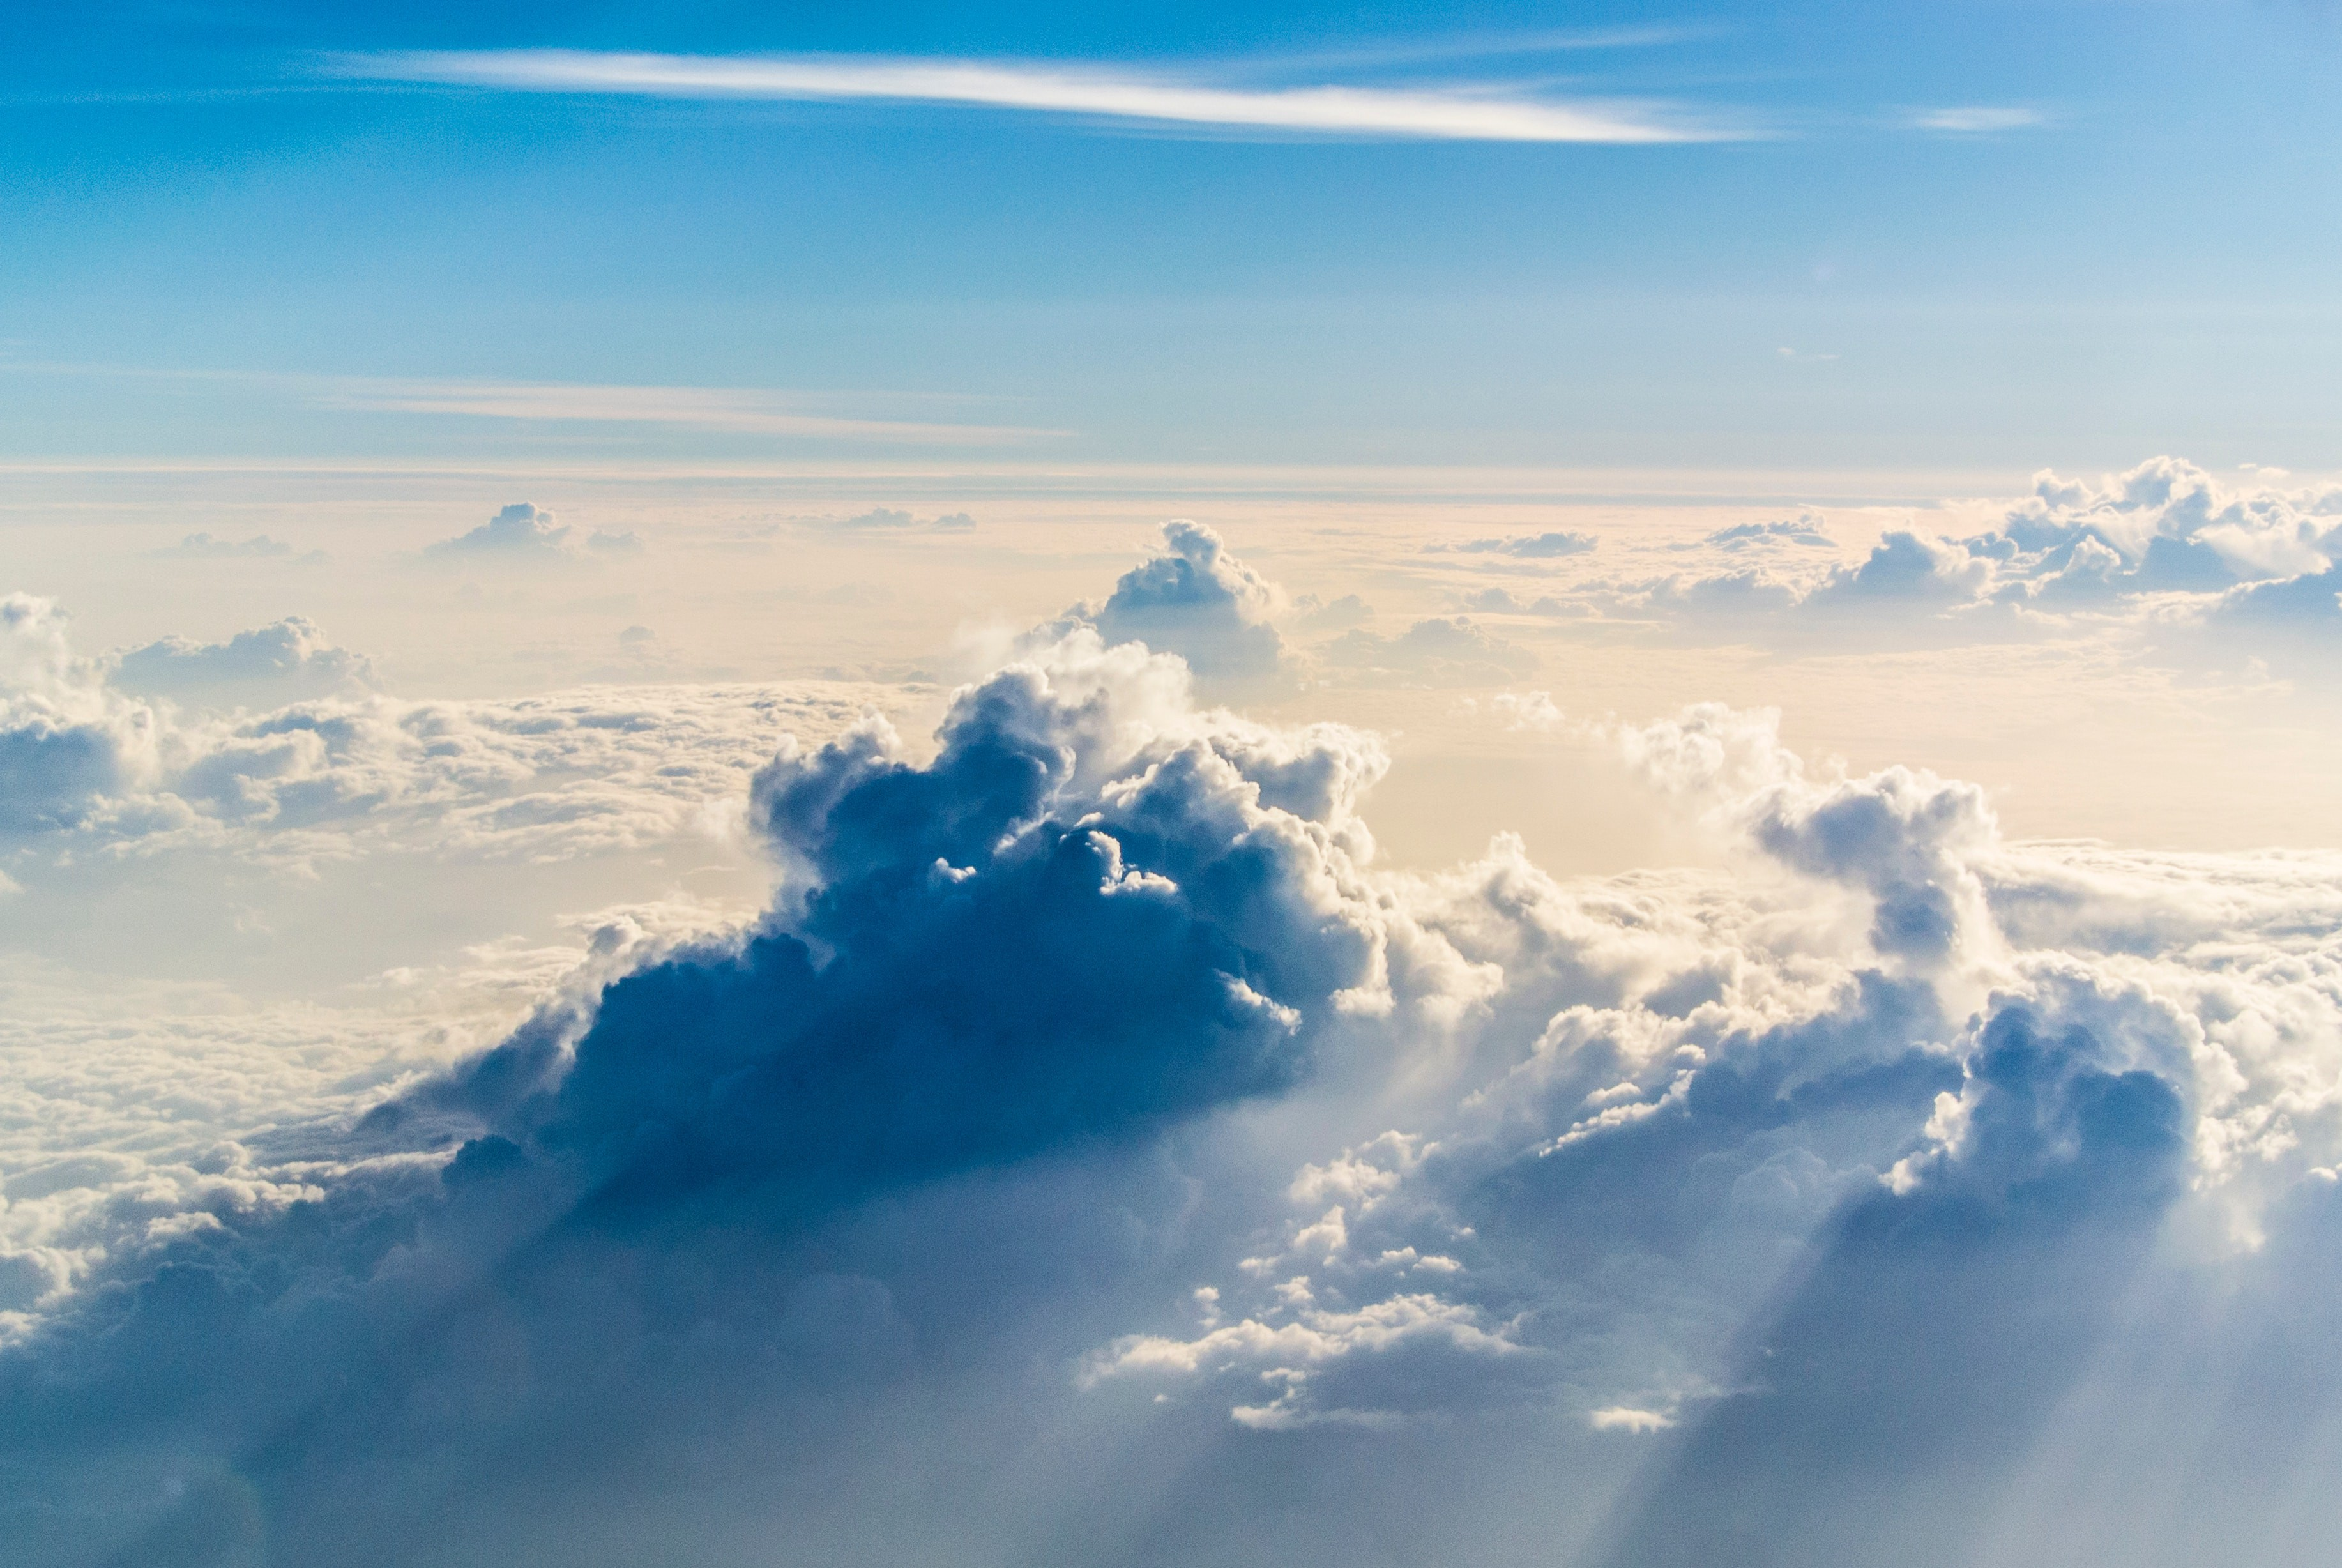 Clouds in the stratosphere